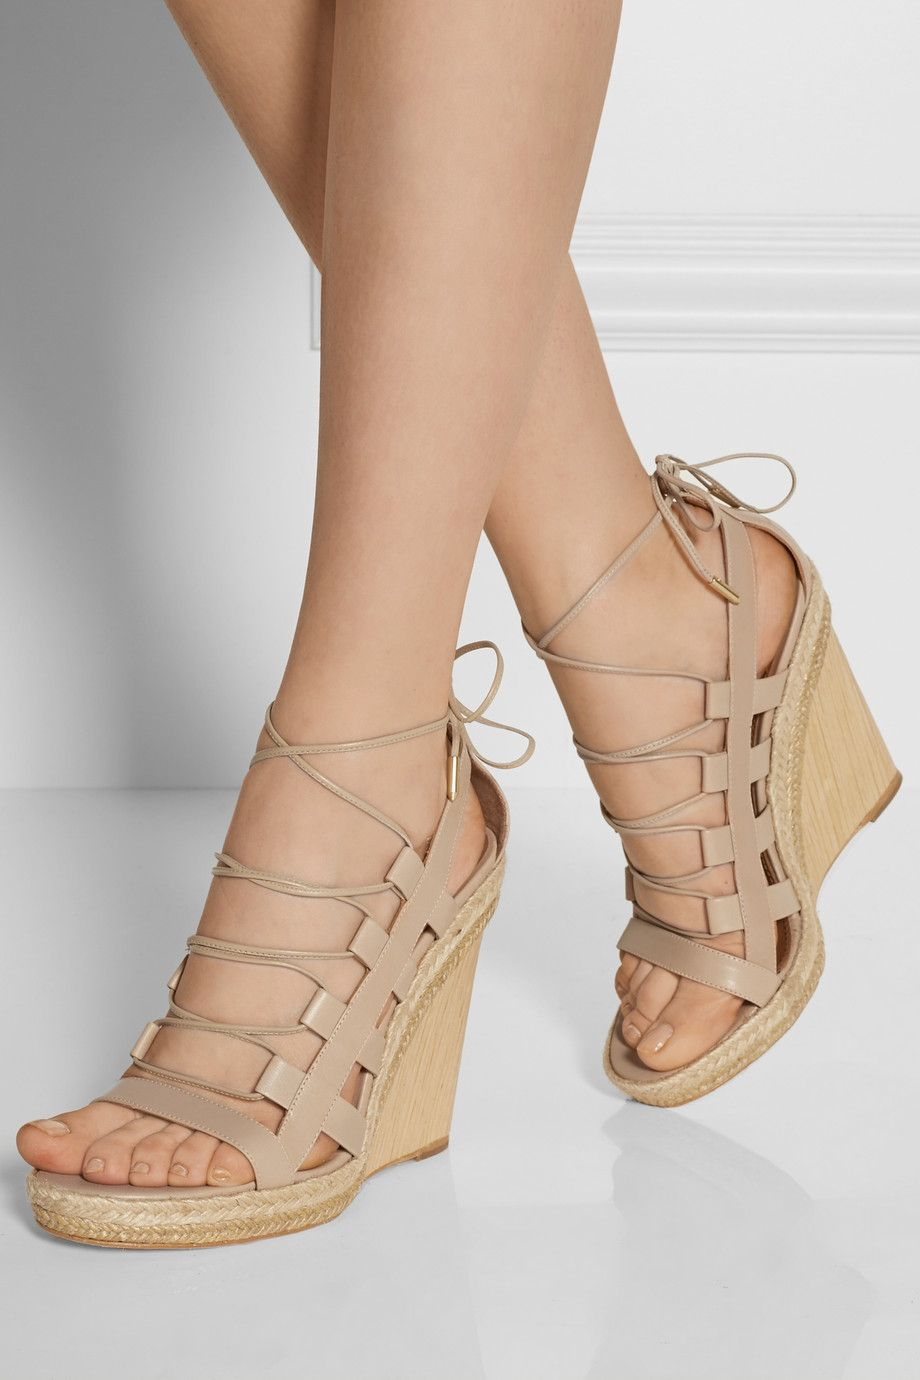 719d360c575 Aquazzura wedges. These give a gladiator effect without covering up the foot.  Great to wear with spring skirts and dresses.